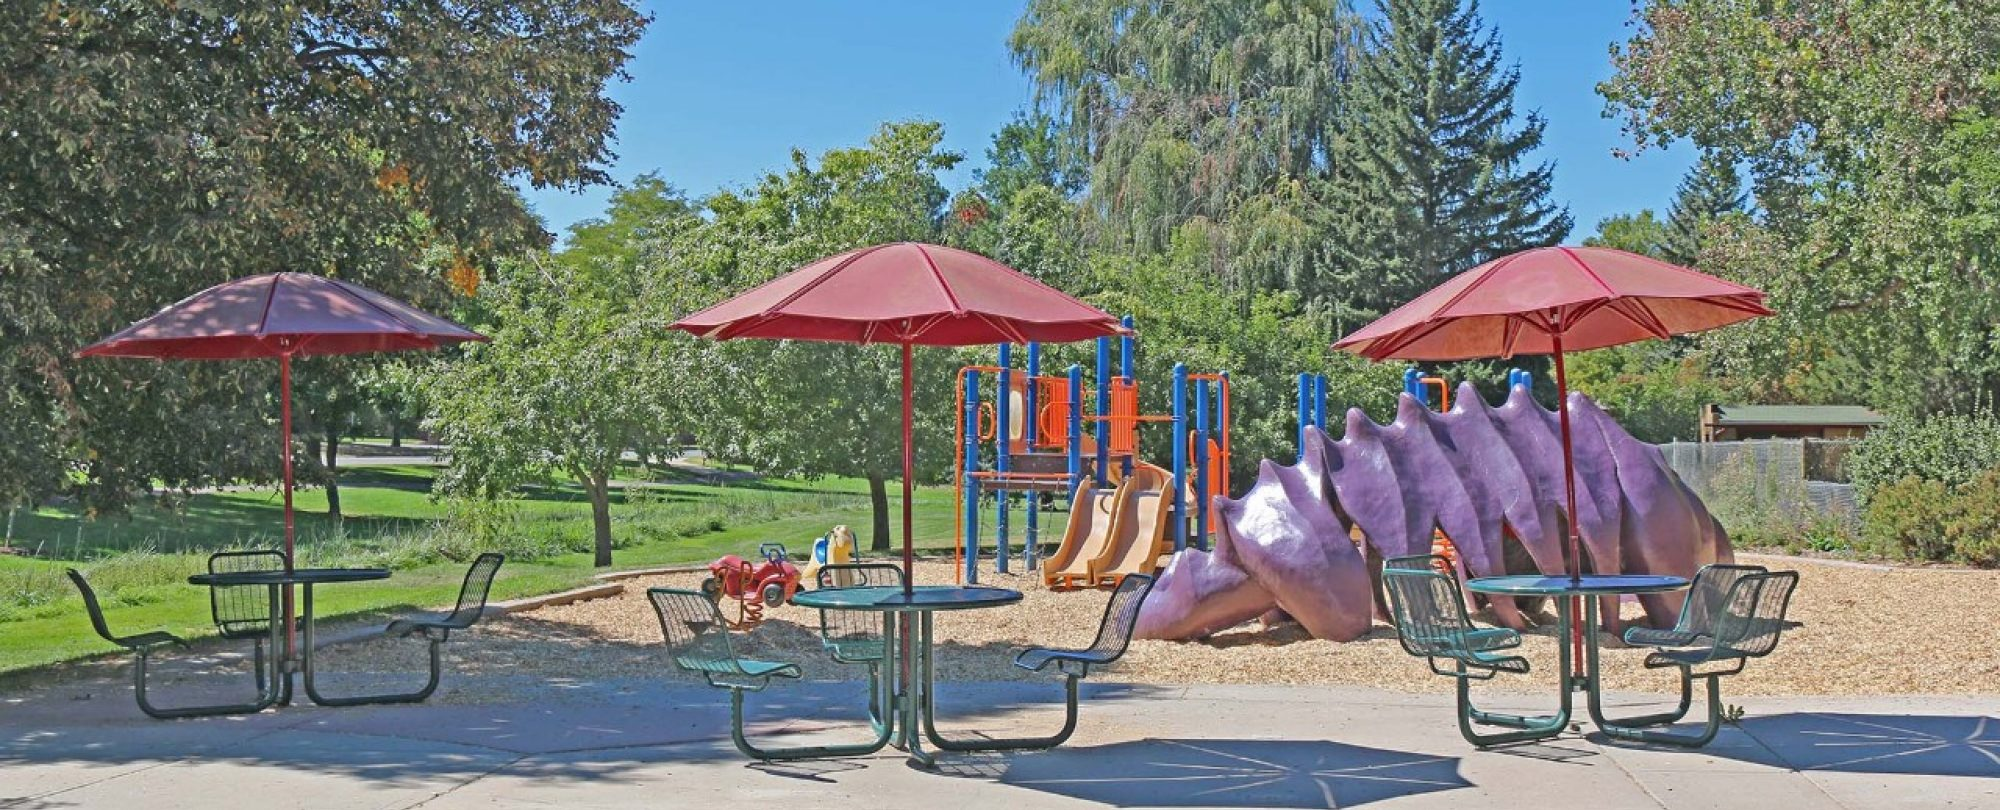 McWilliams Park playground and picnic site